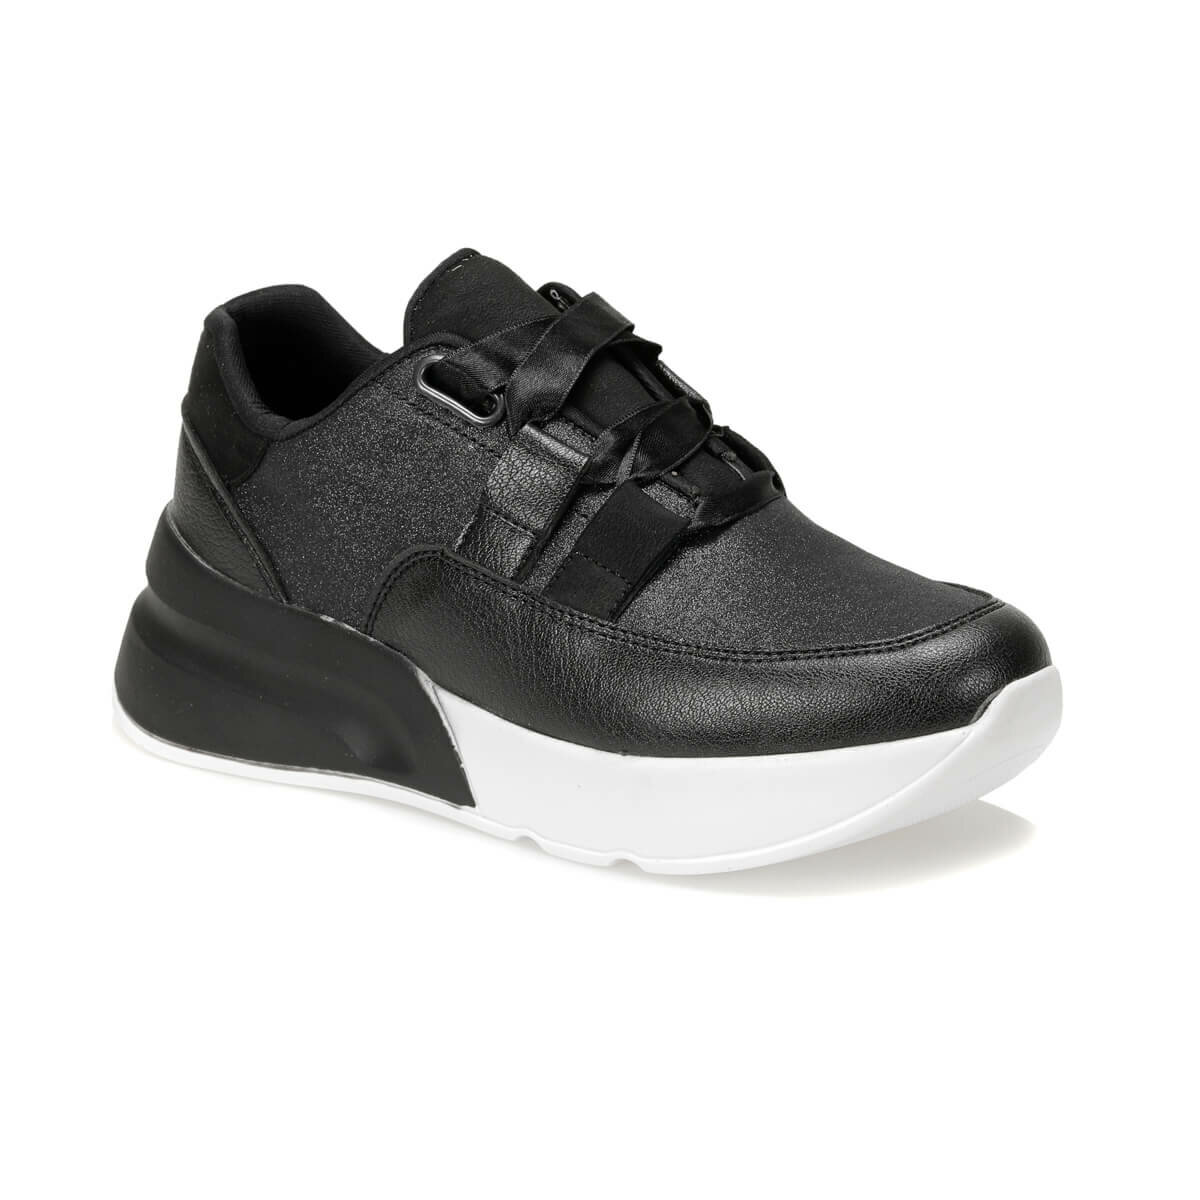 FLO SASU85Z SKIN Black Women 'S Sneaker Shoes BUTIGO